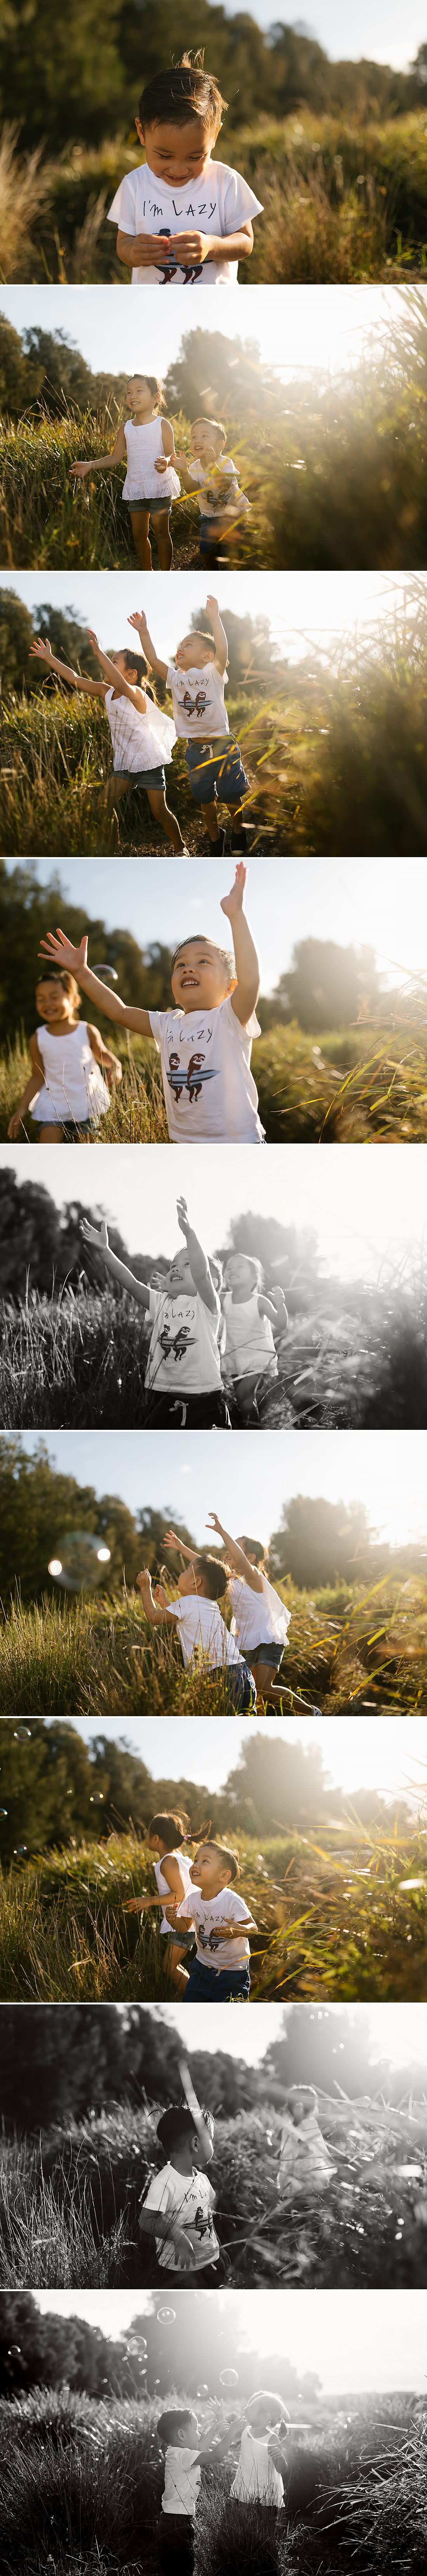 Lifestyle-family-photography-sutherland-shire-sydney